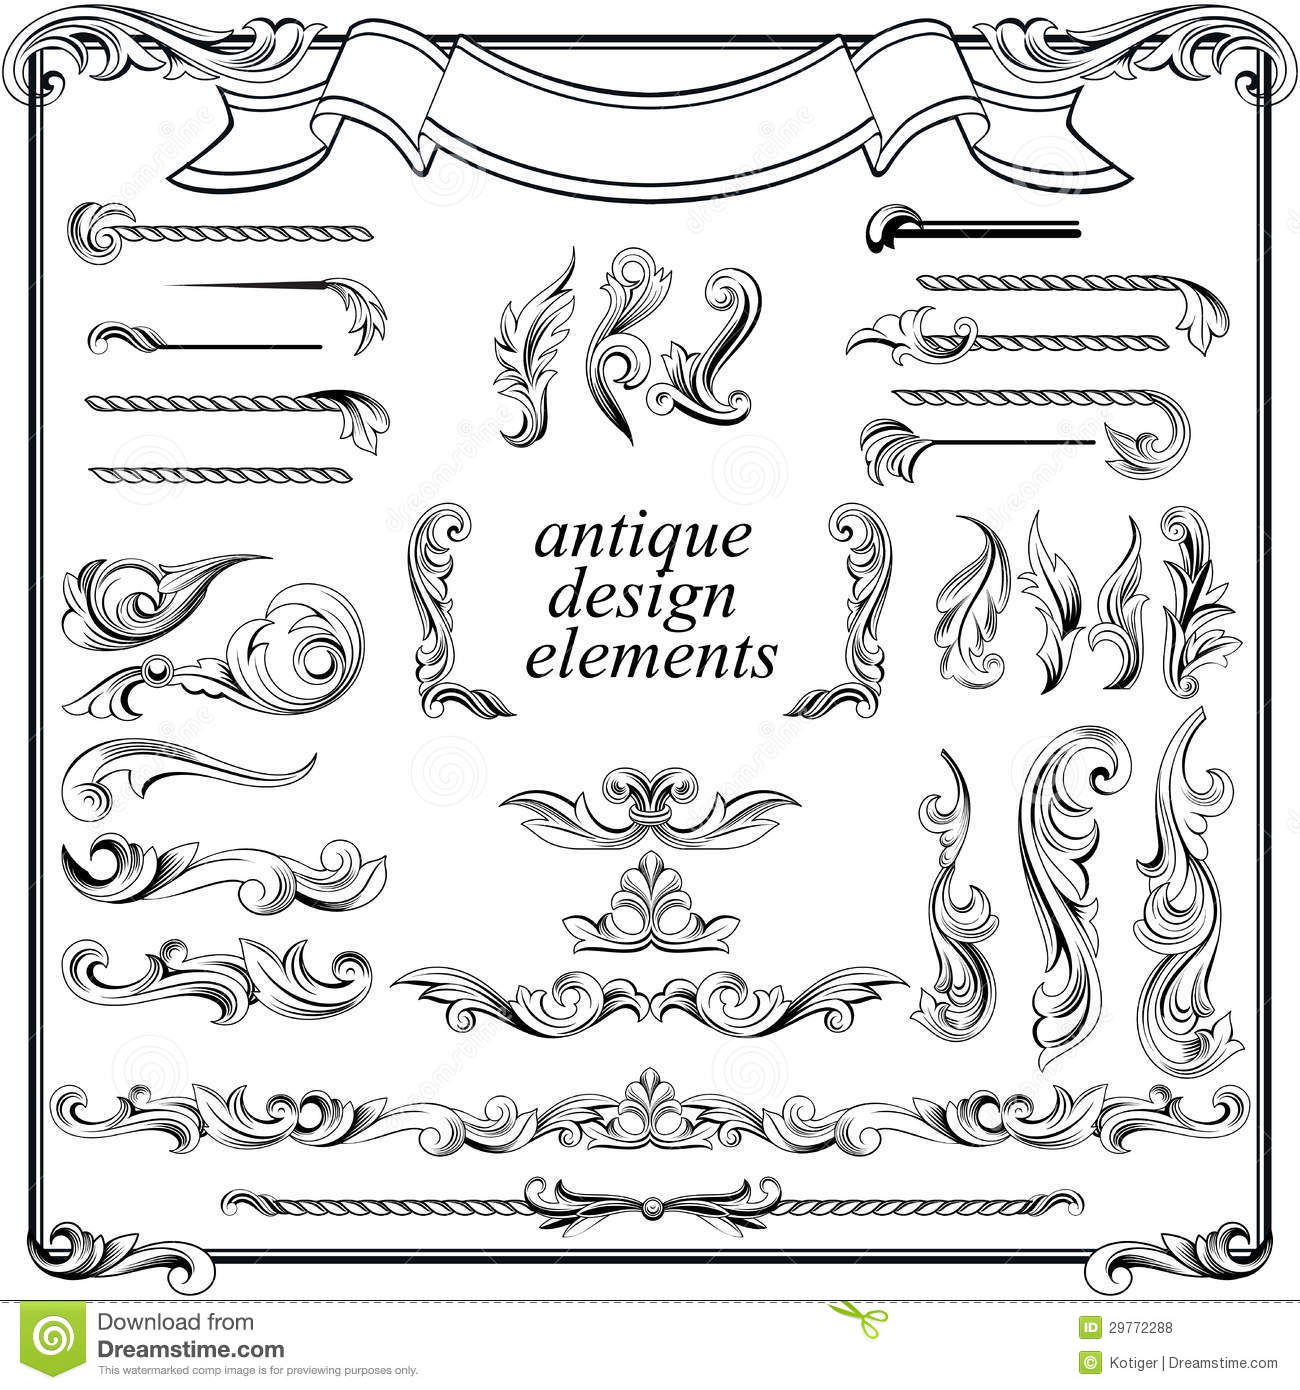 Calligraphic design elements page decoration stock vector